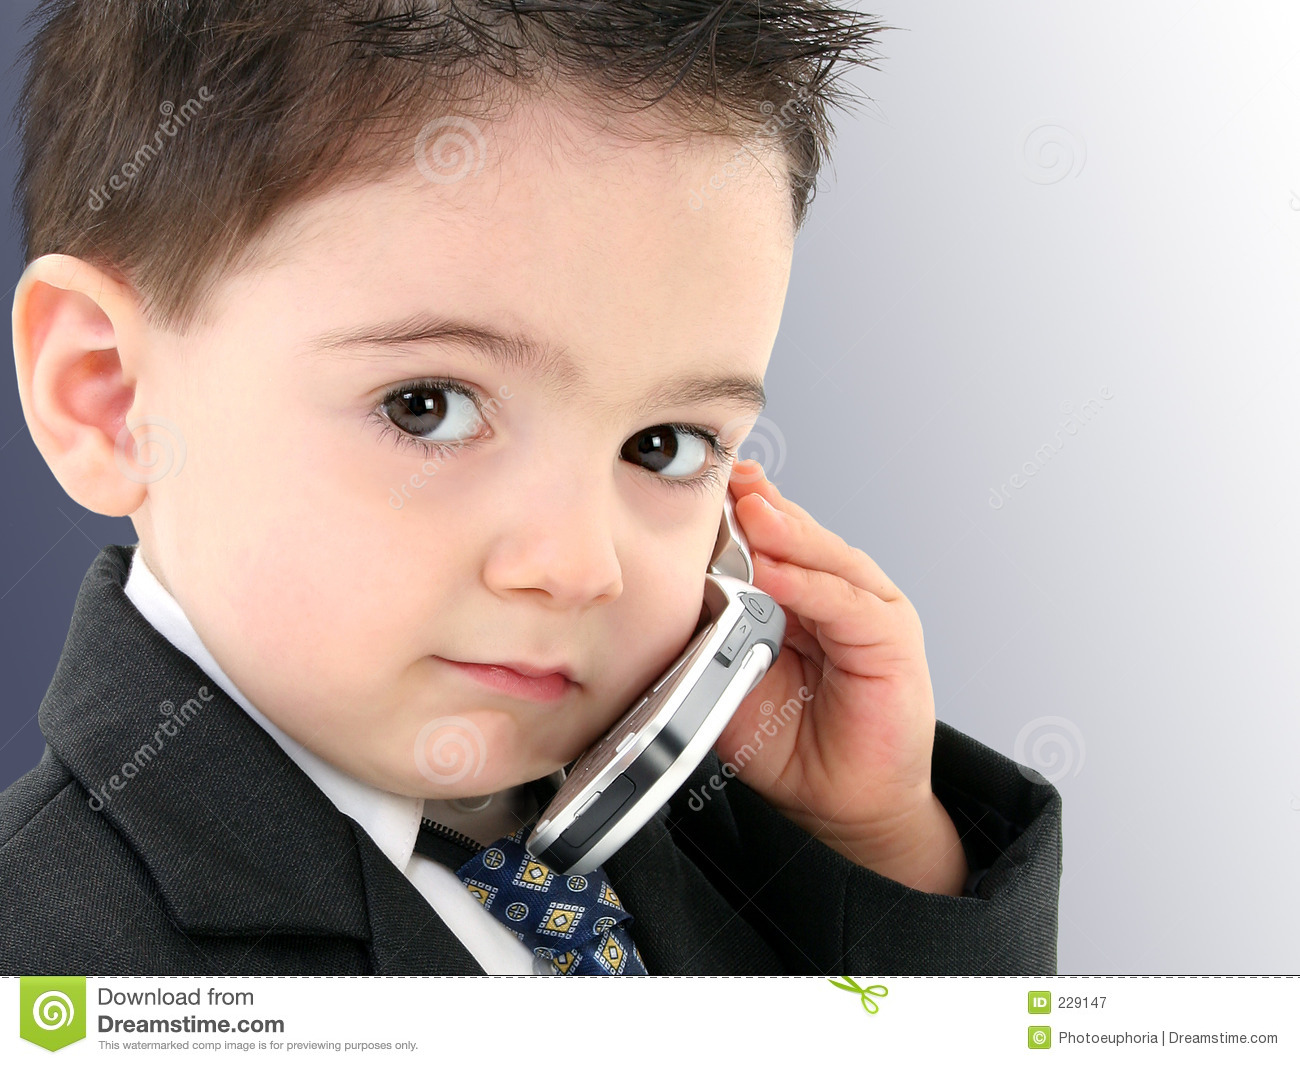 d1633c031 Adorable Baby Boy In Suit On Cellphone Stock Image - Image of ...